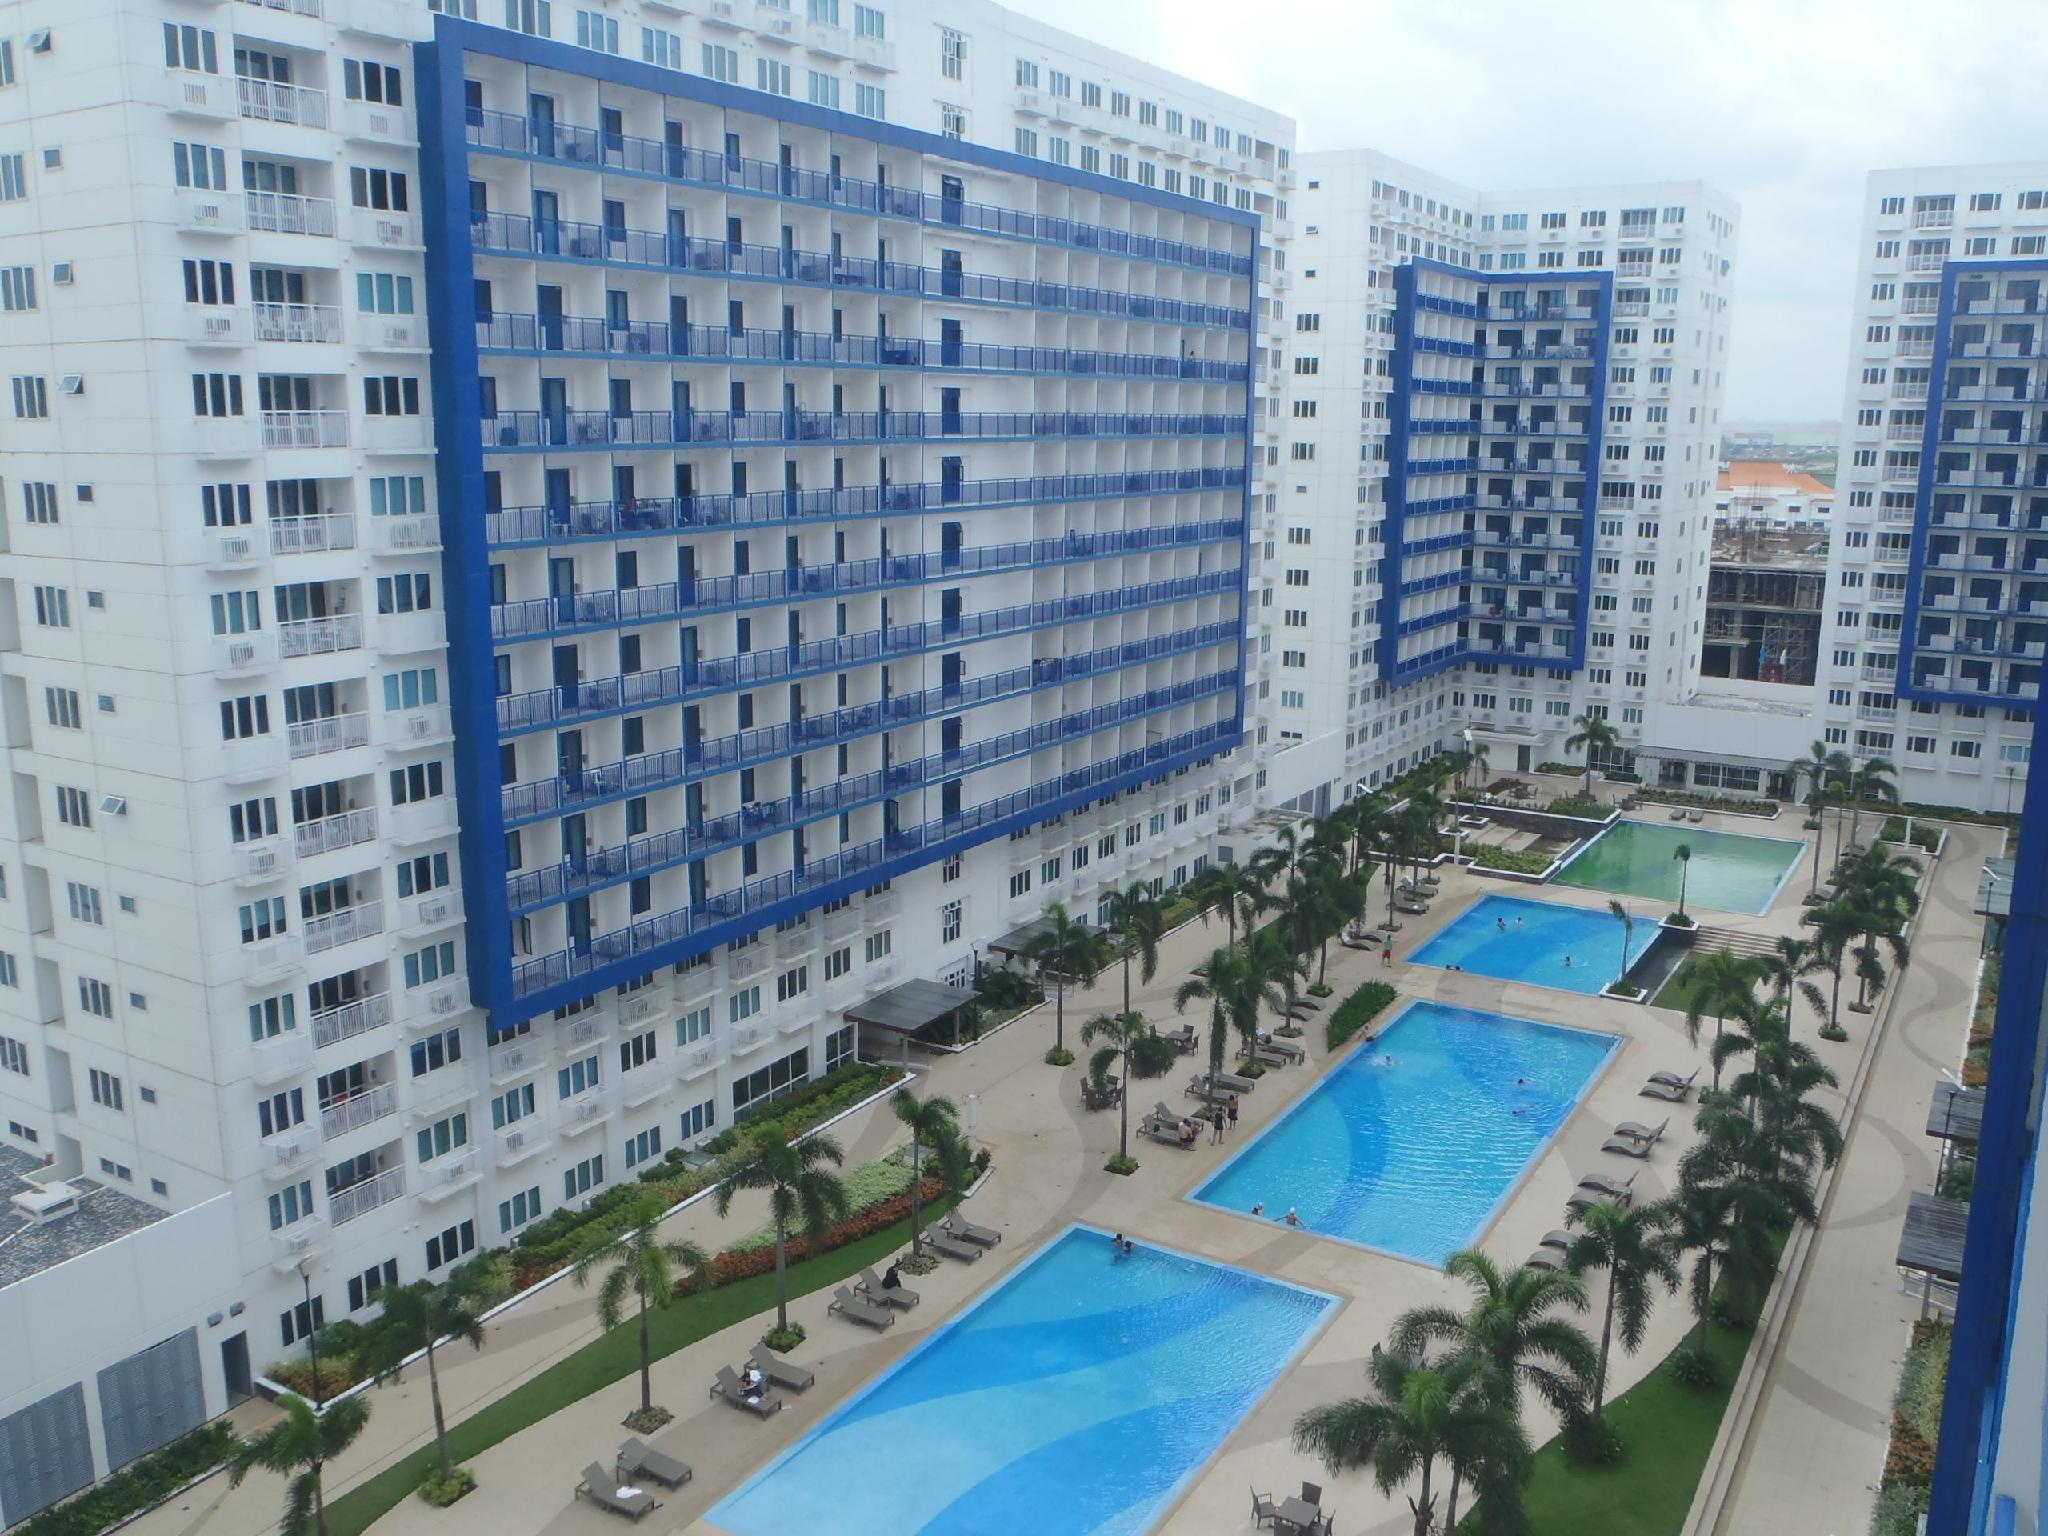 Jericho 39 S Place Sea Residences Manila Philippines Great Discounted Rates